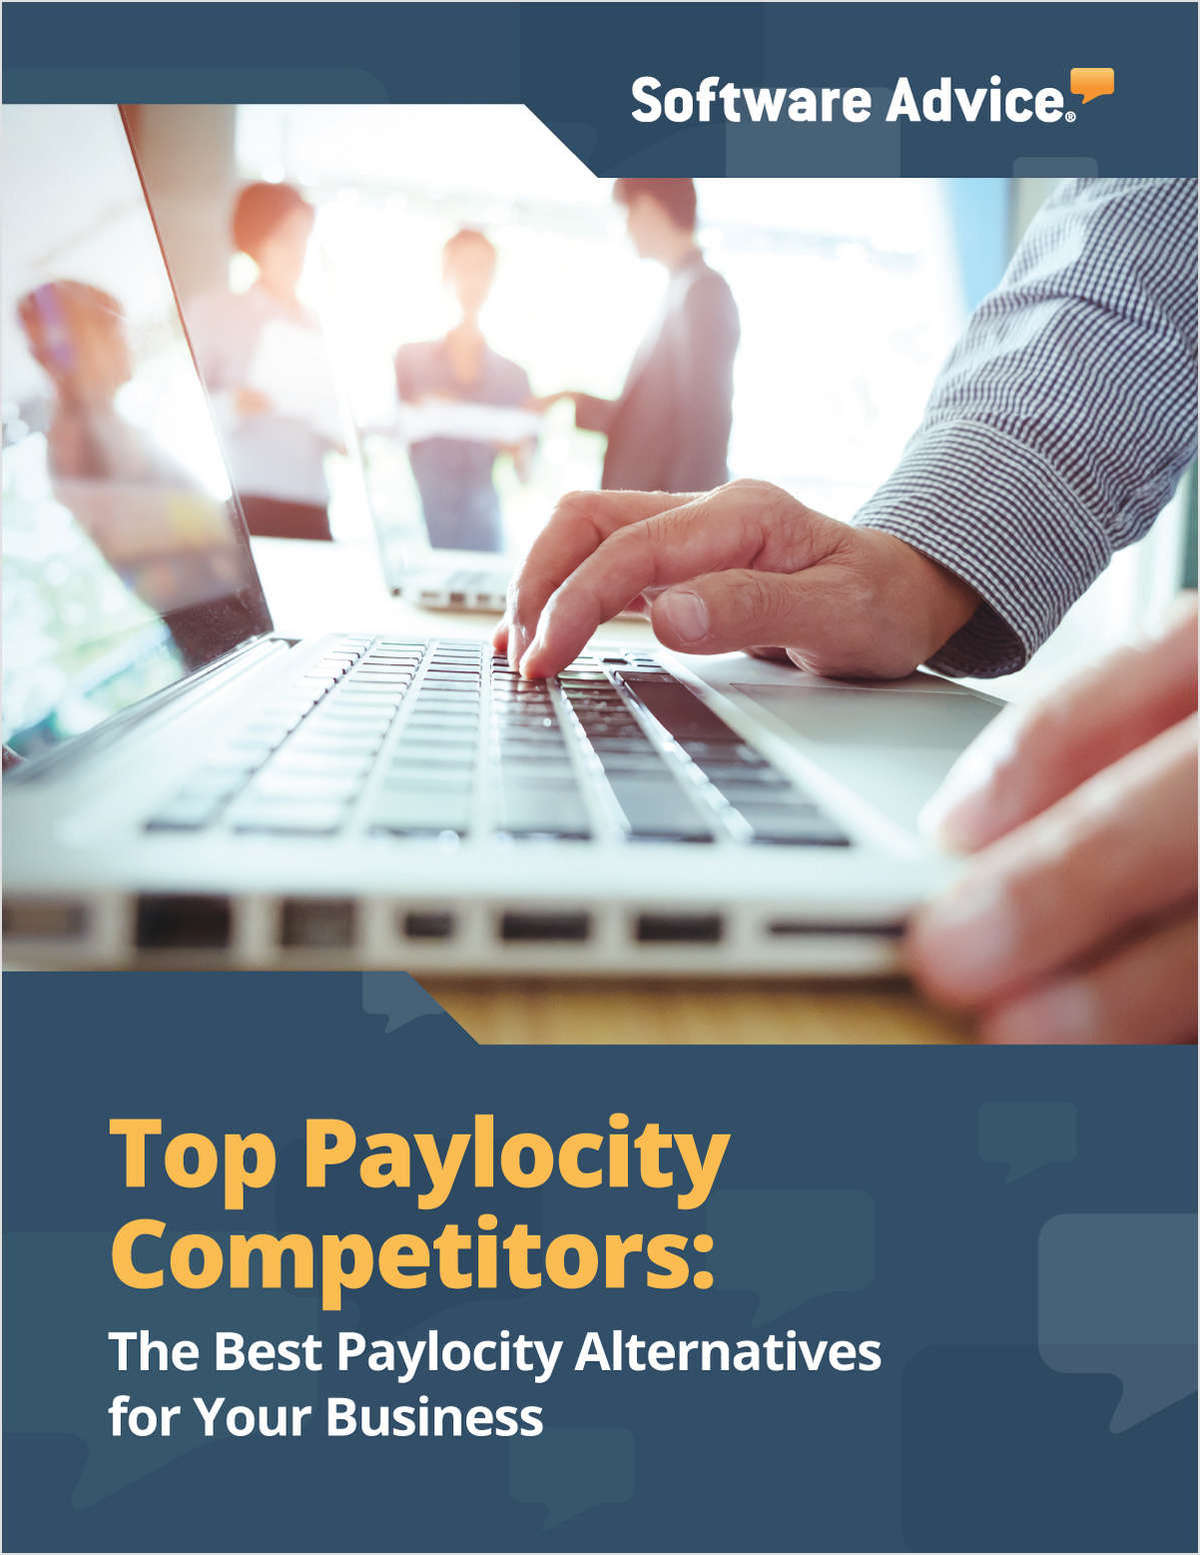 Top Recommended Paylocity Competitors and Alternatives